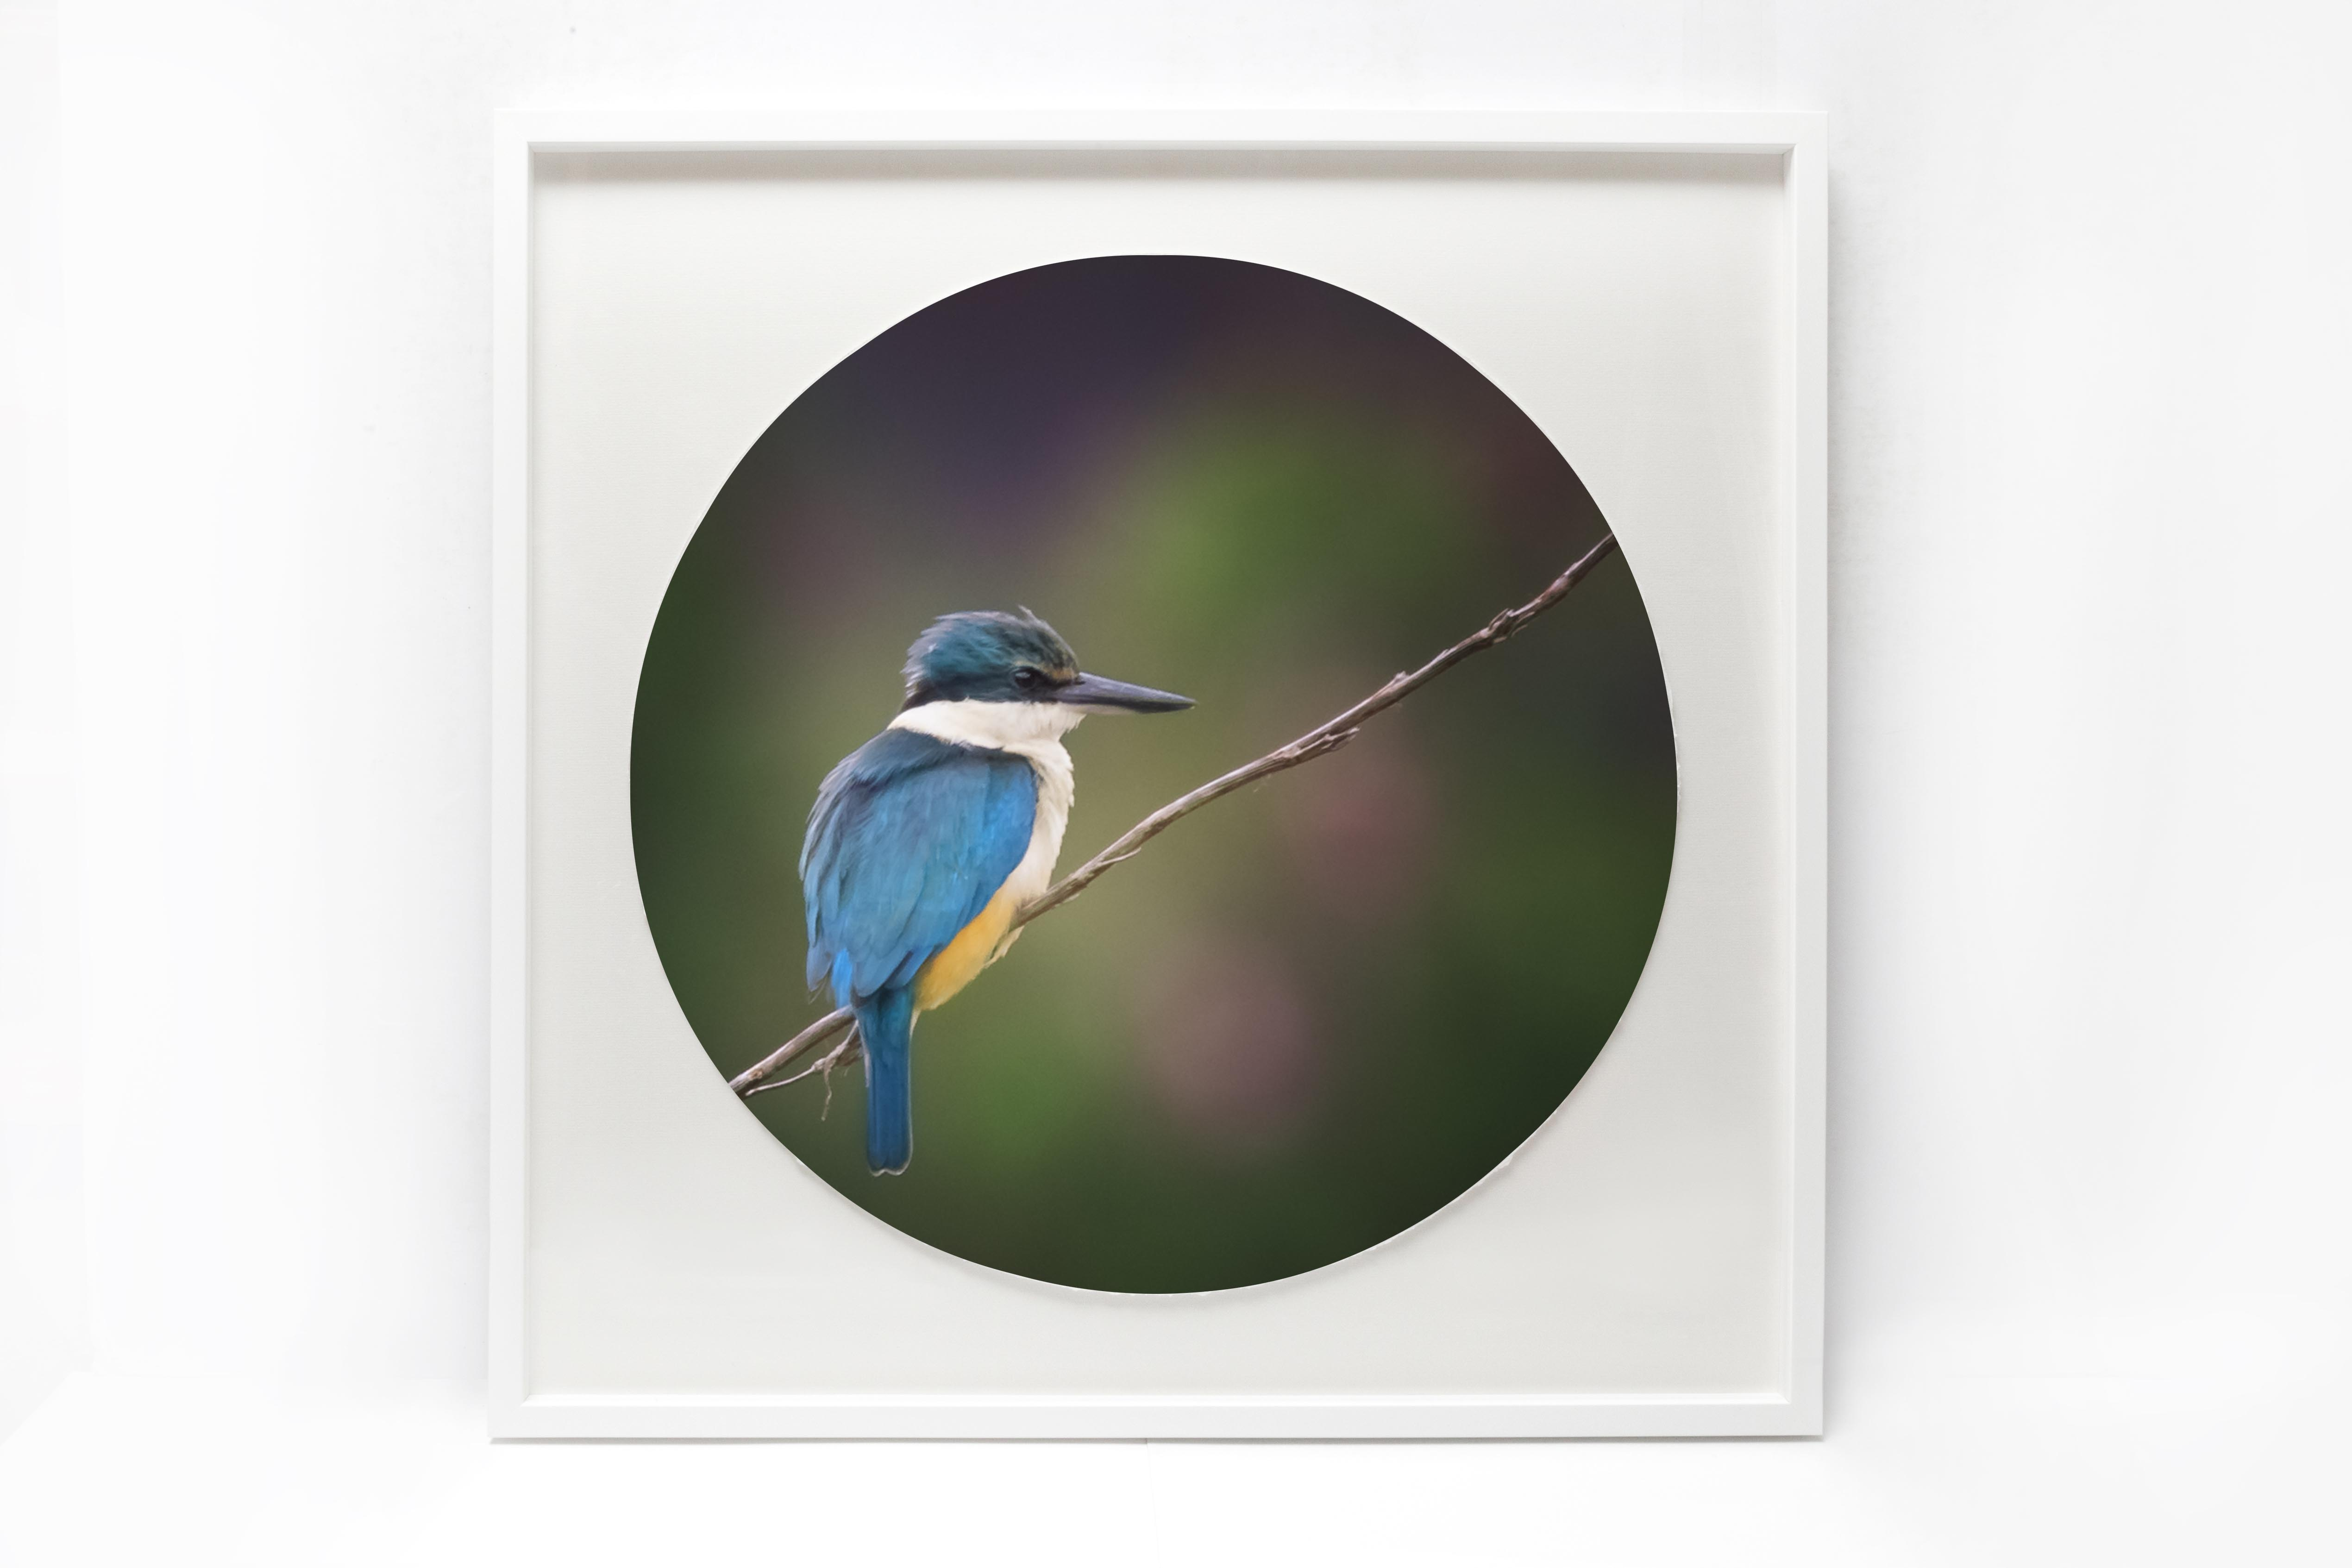 Kingfisher in a square frame with a circular mat.